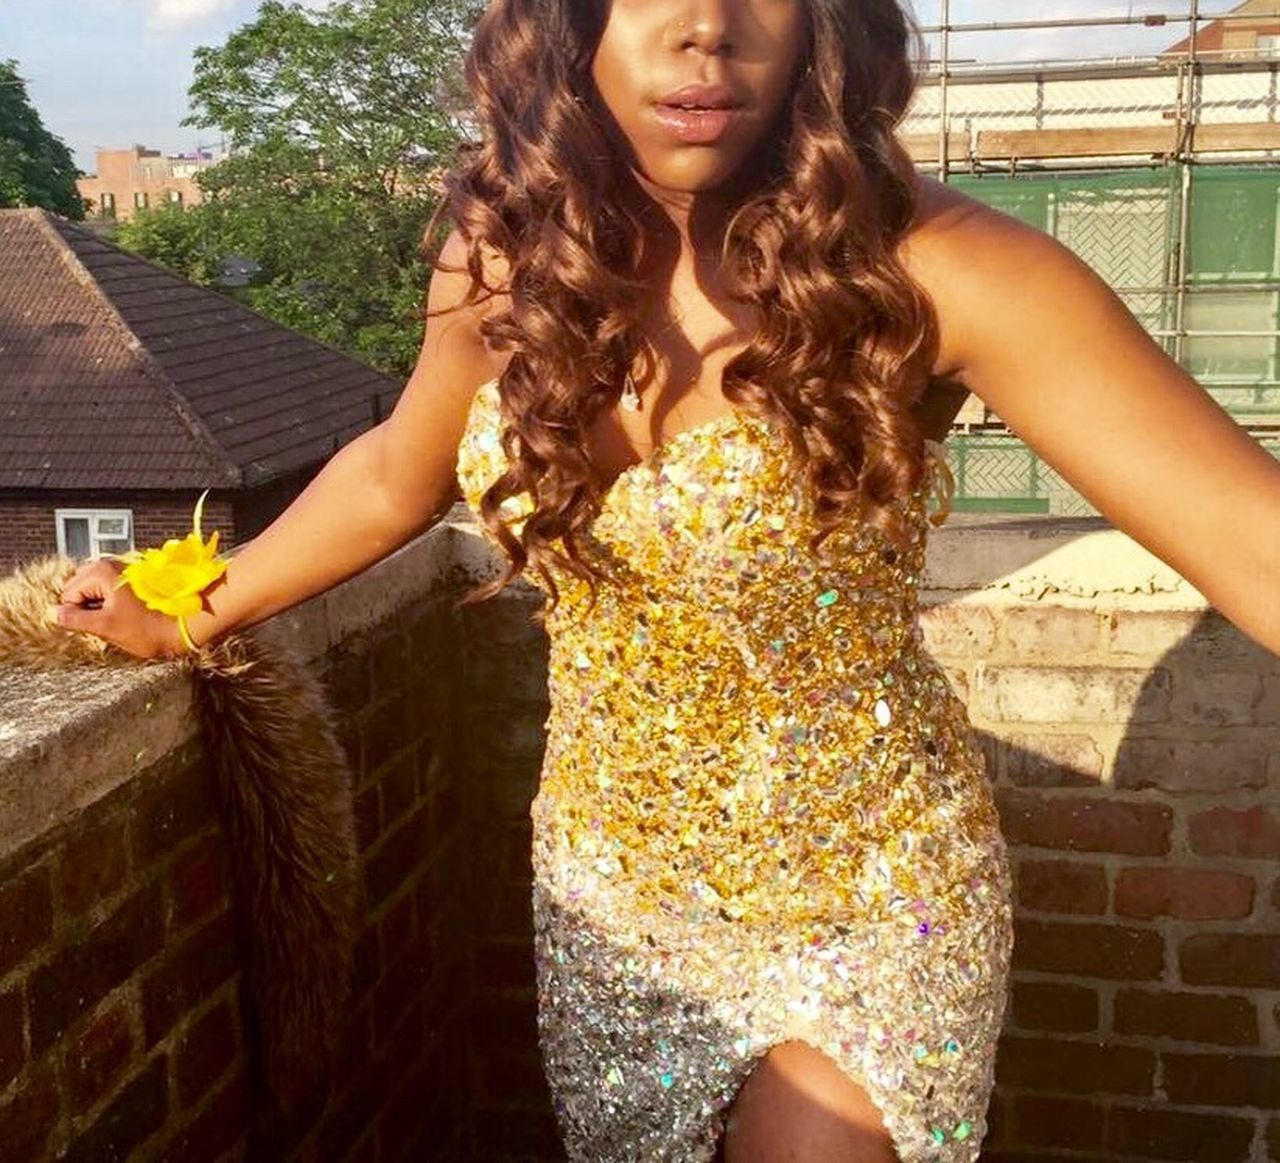 Urban mermaid MermaidLife Prom Dress Golden Sparkles ✨ Sequins Brown Curls Designer Dress Yellow Flower